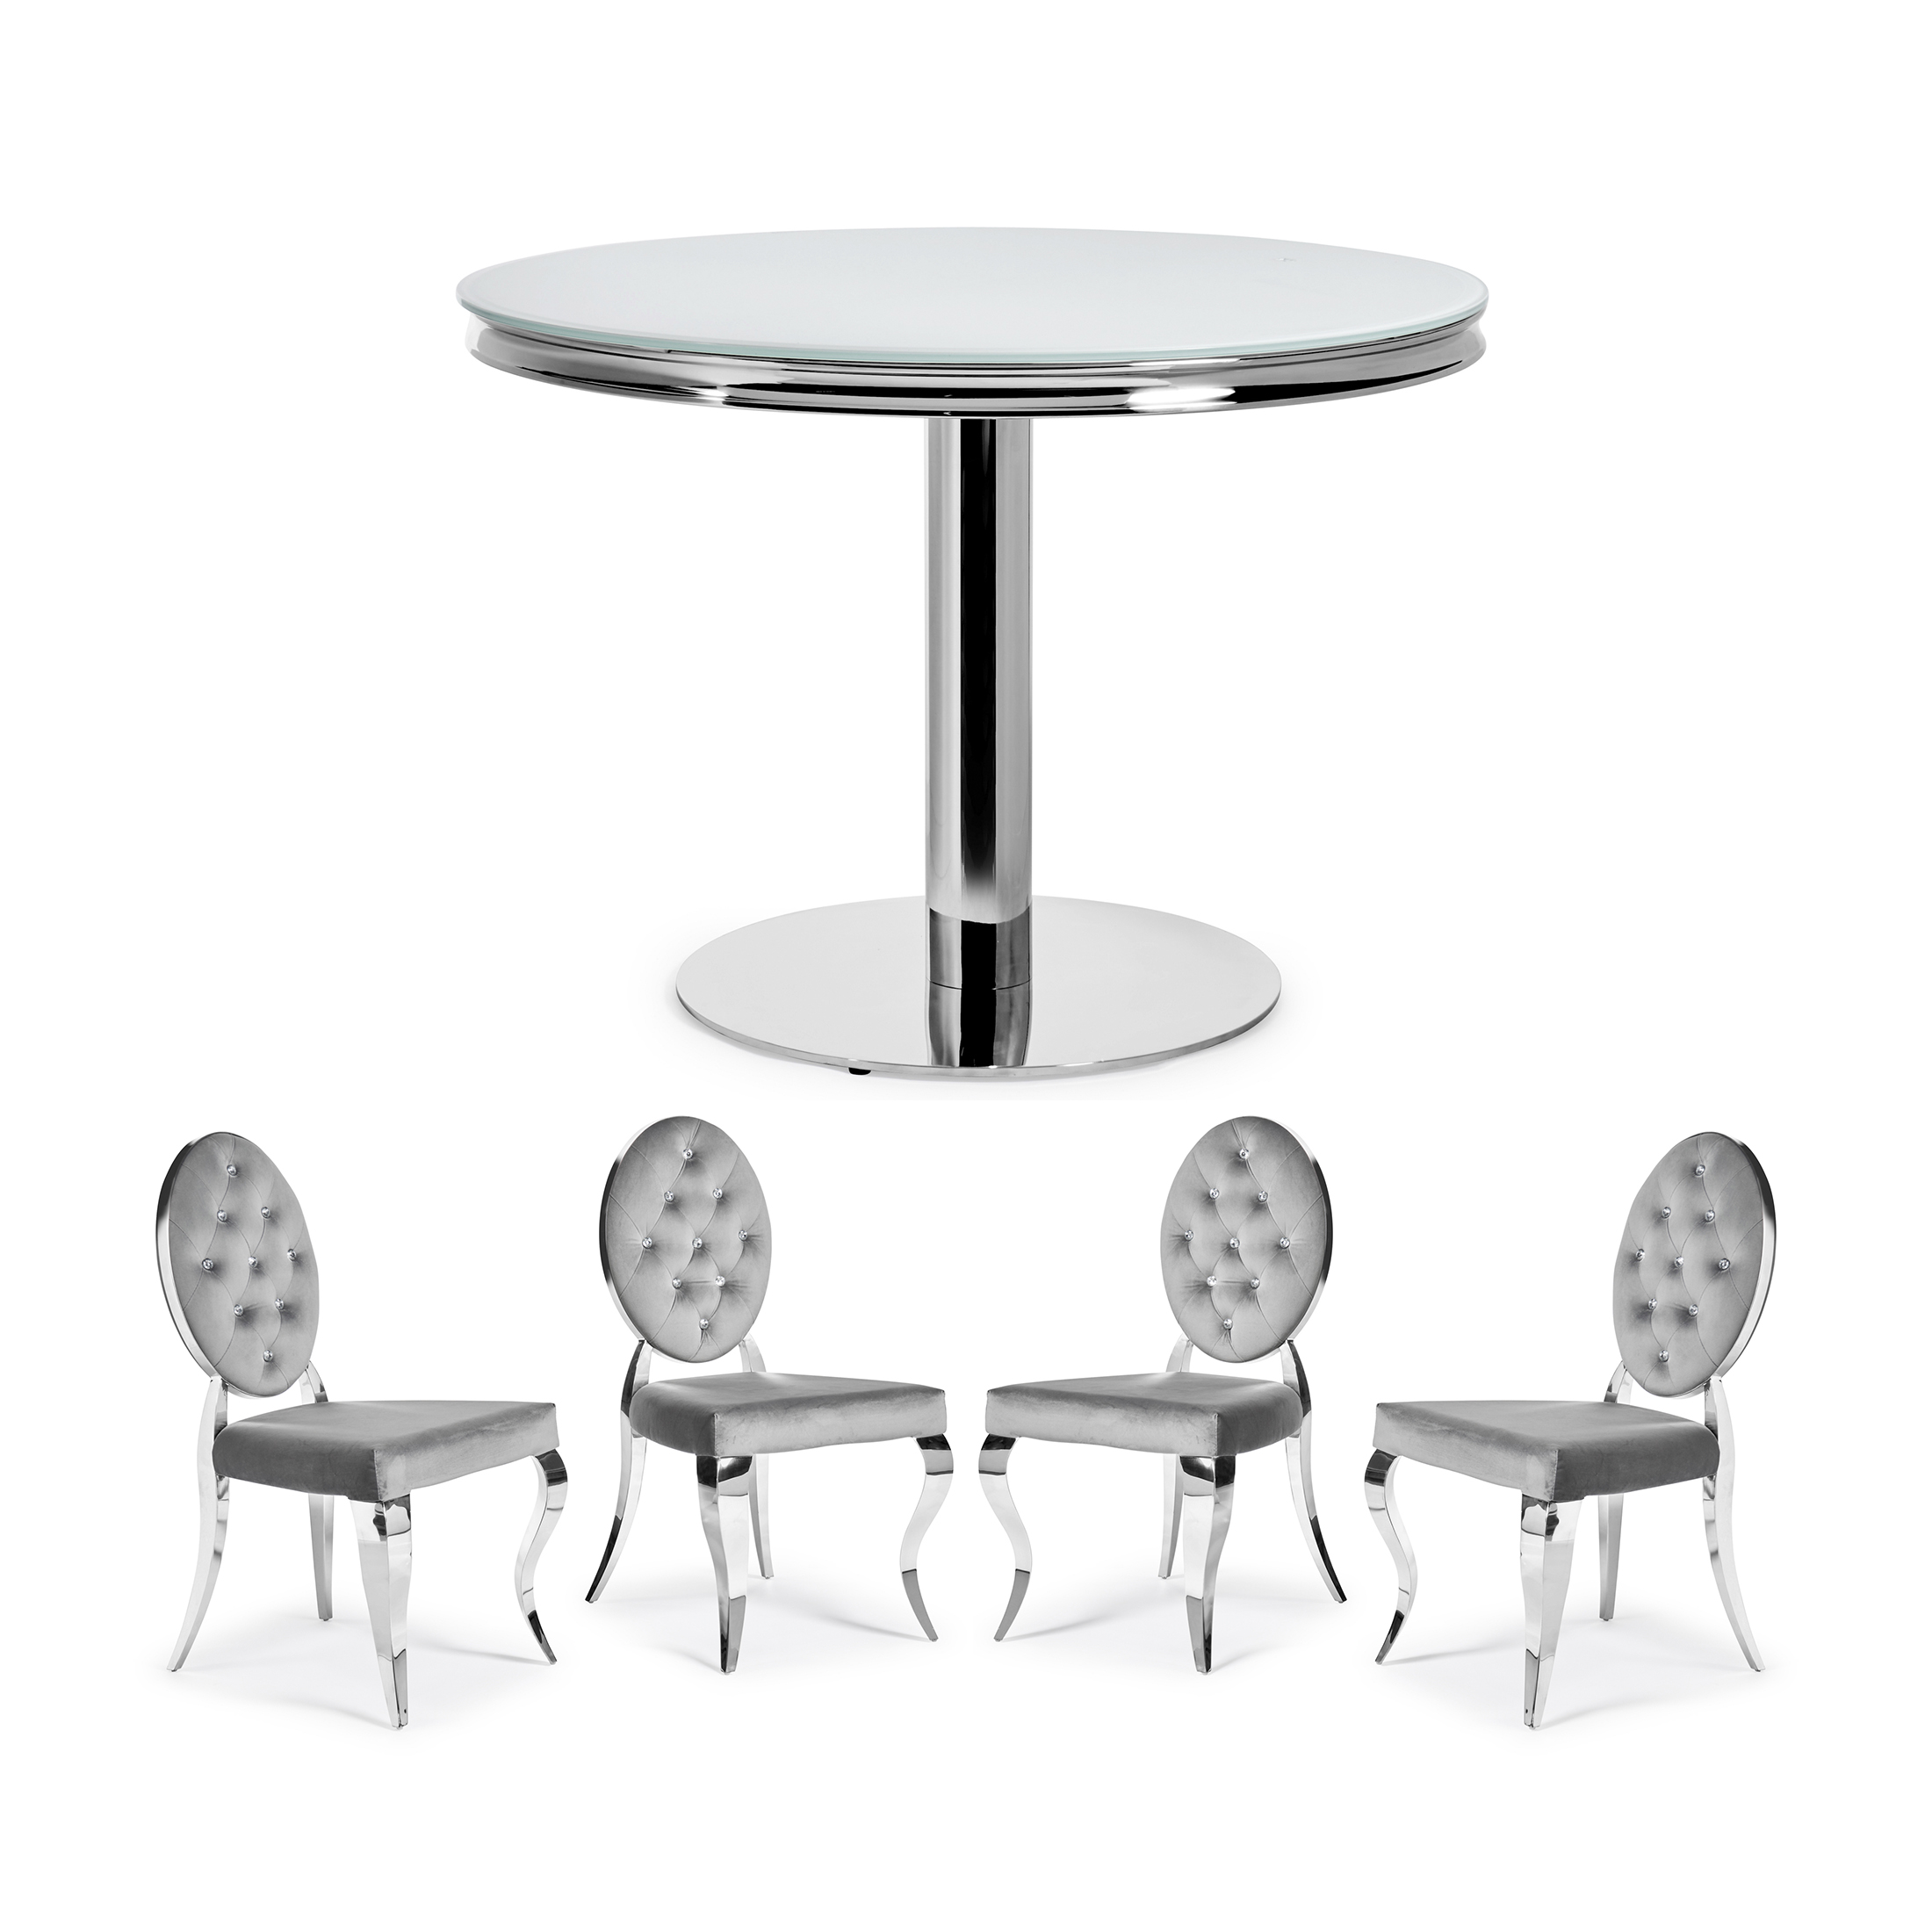 Luxury Dining Room Table And Chair Sets For Sale Grosvenor Furniture